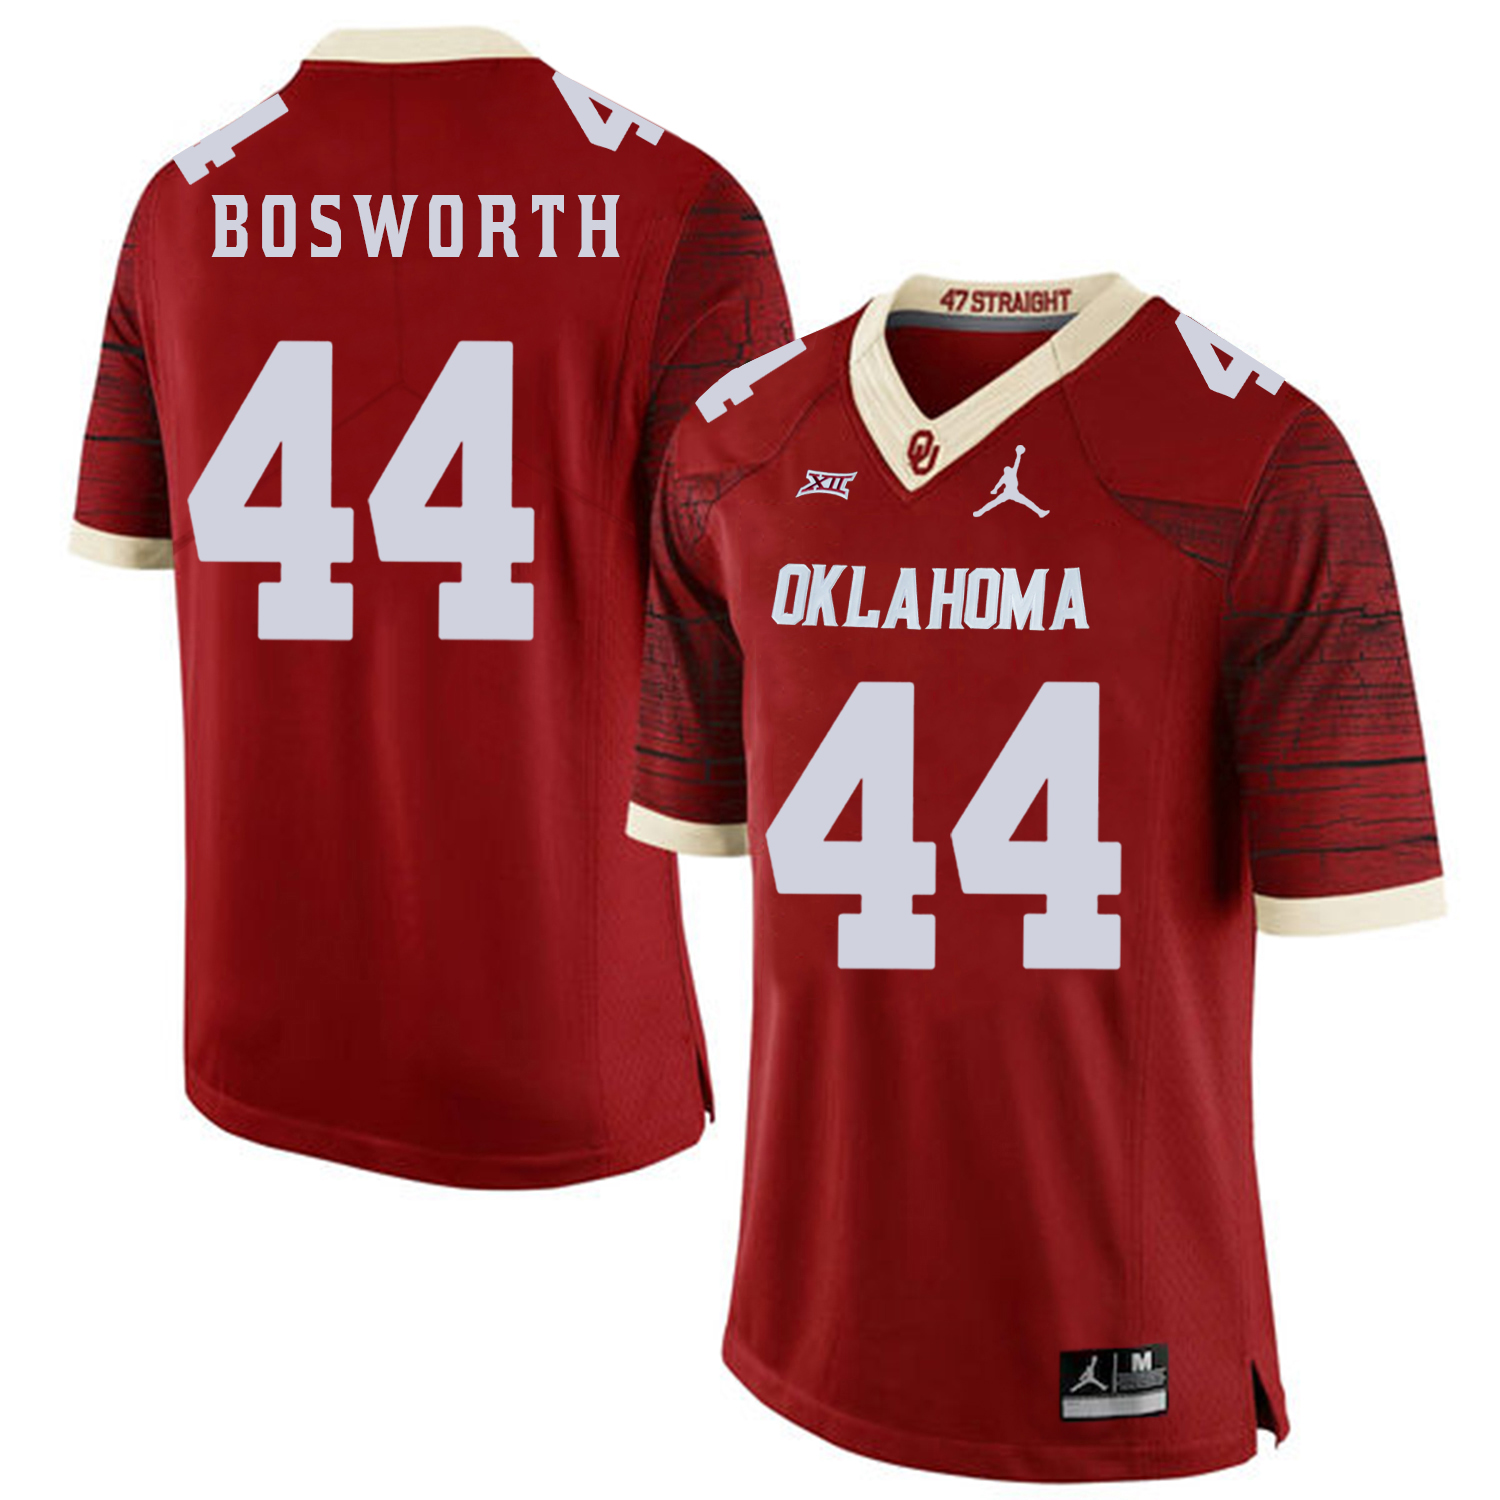 Oklahoma Sooners 44 Brian Bosworth Red 47 Game Winning Streak College Football Jersey